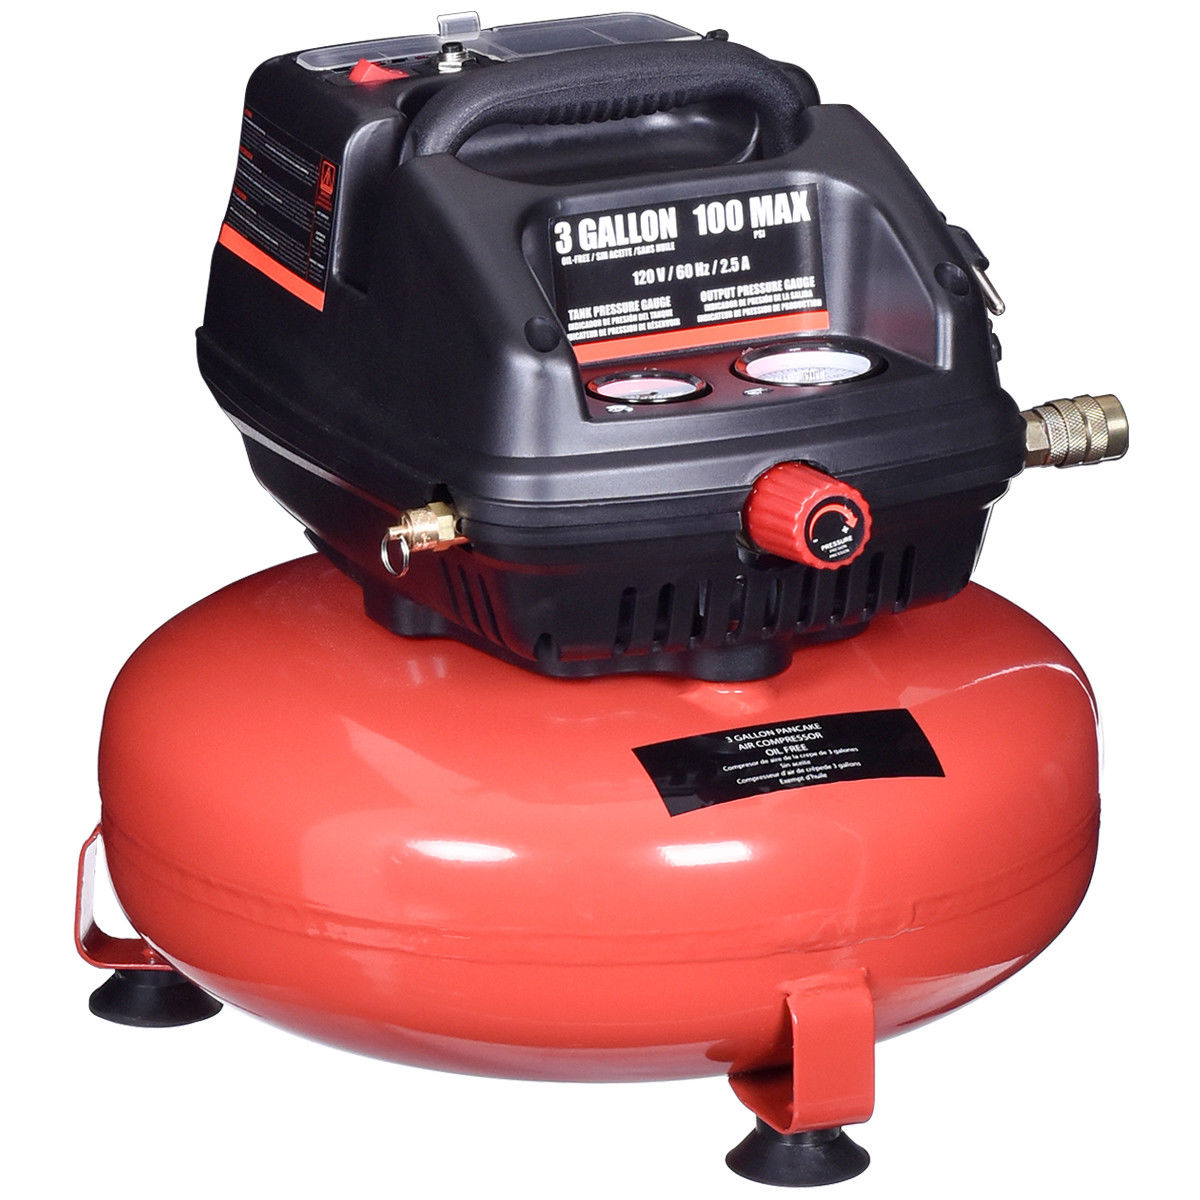 Gymax 3 Gallon 100 PSI Oil-Free Pancake Air Compressor 0.5 HP Motor Portable